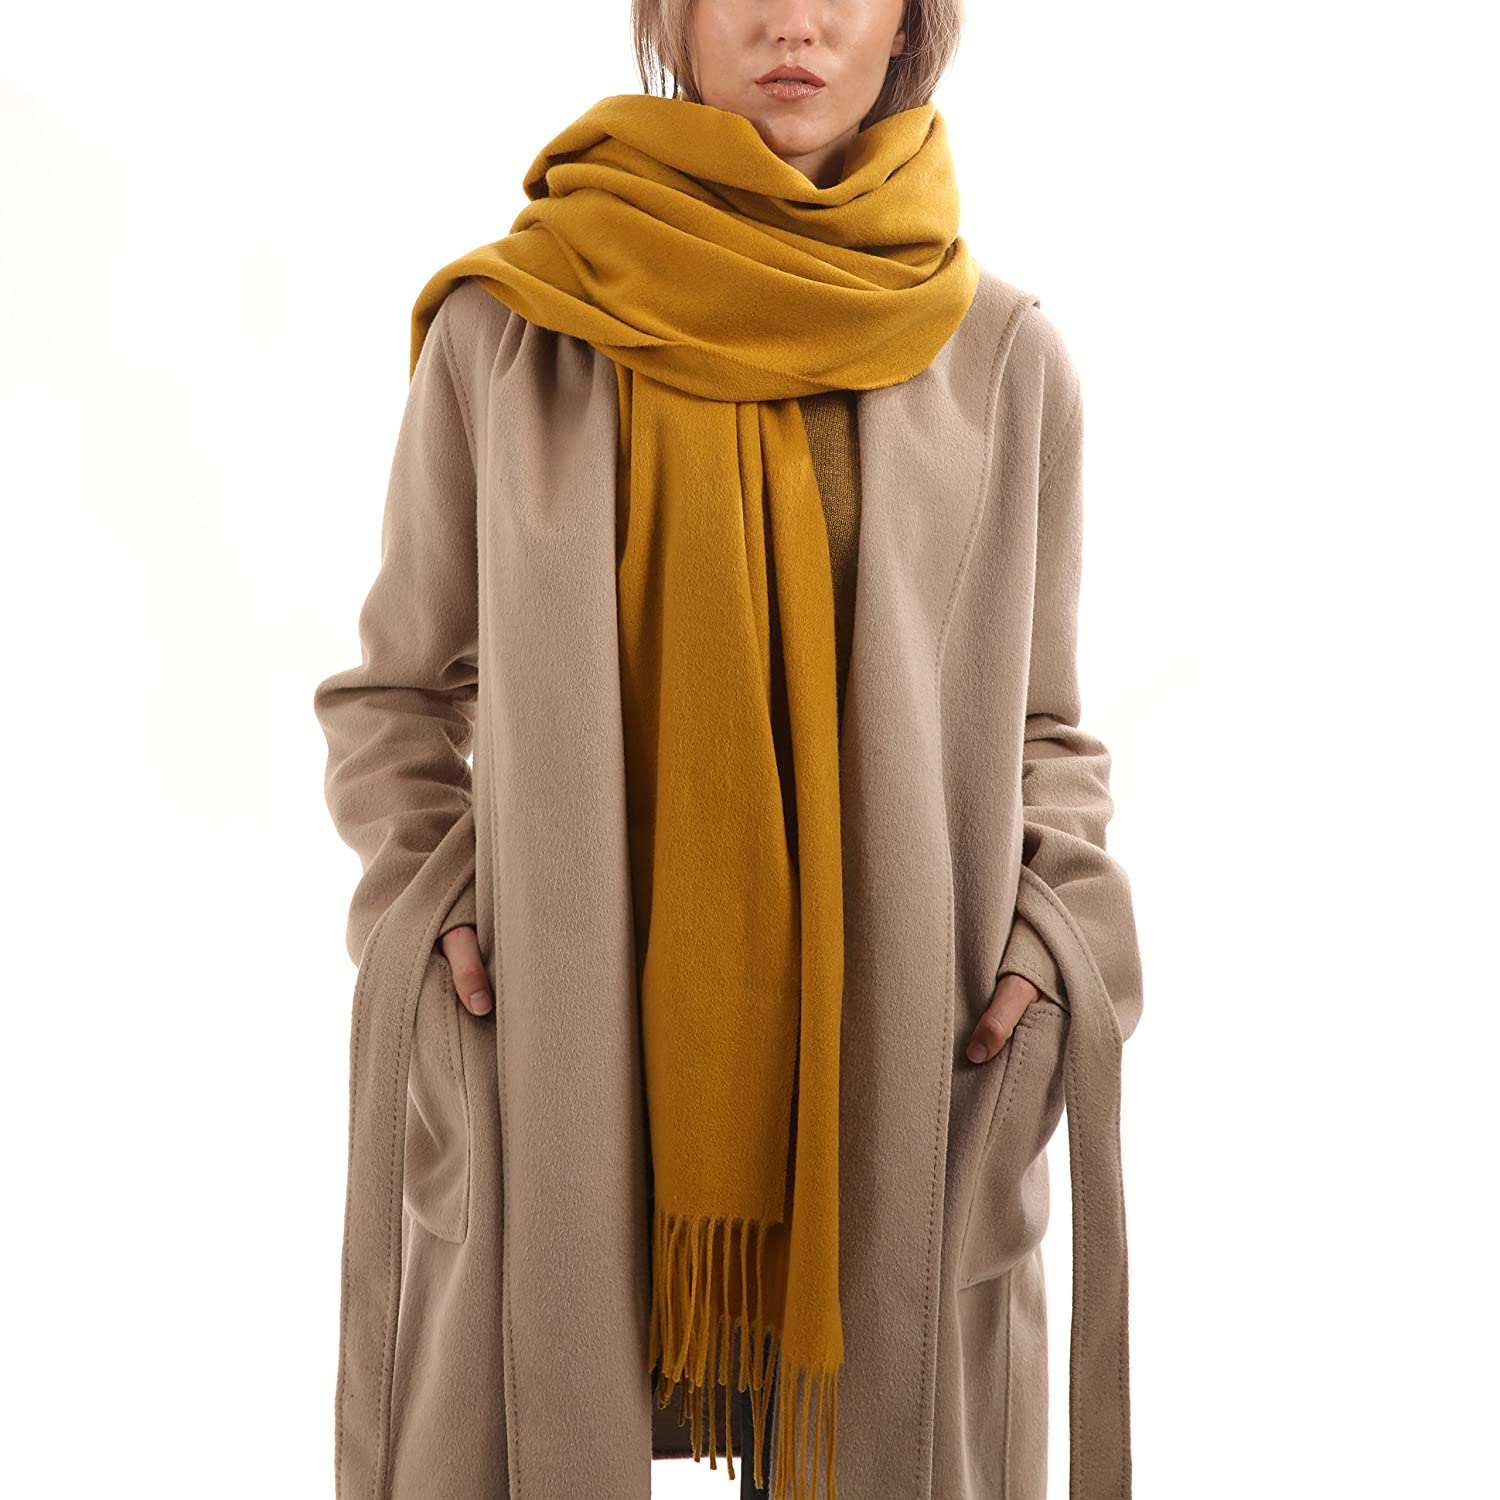 Mustard Cashmere Scarf  Gift Wrapped  Extra Large  Scarves for Women by UNLABELED